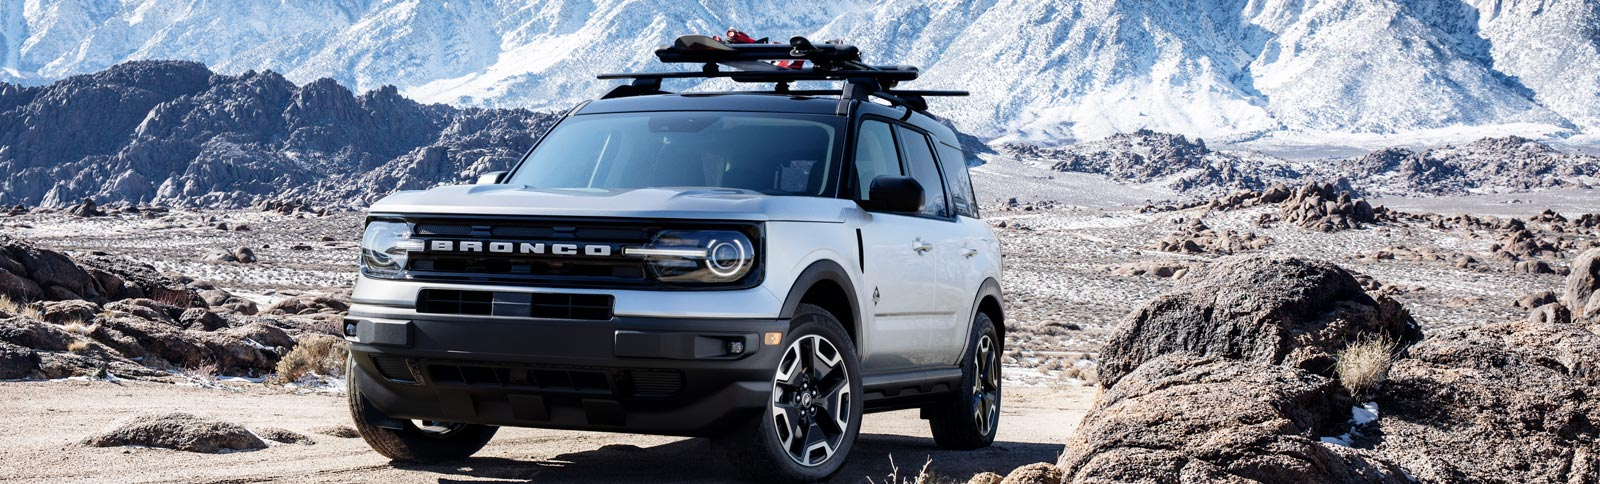 All-New Bronco Sport Lifestyle Accessory Bundles Enhance the Adventure Right from the Dealer